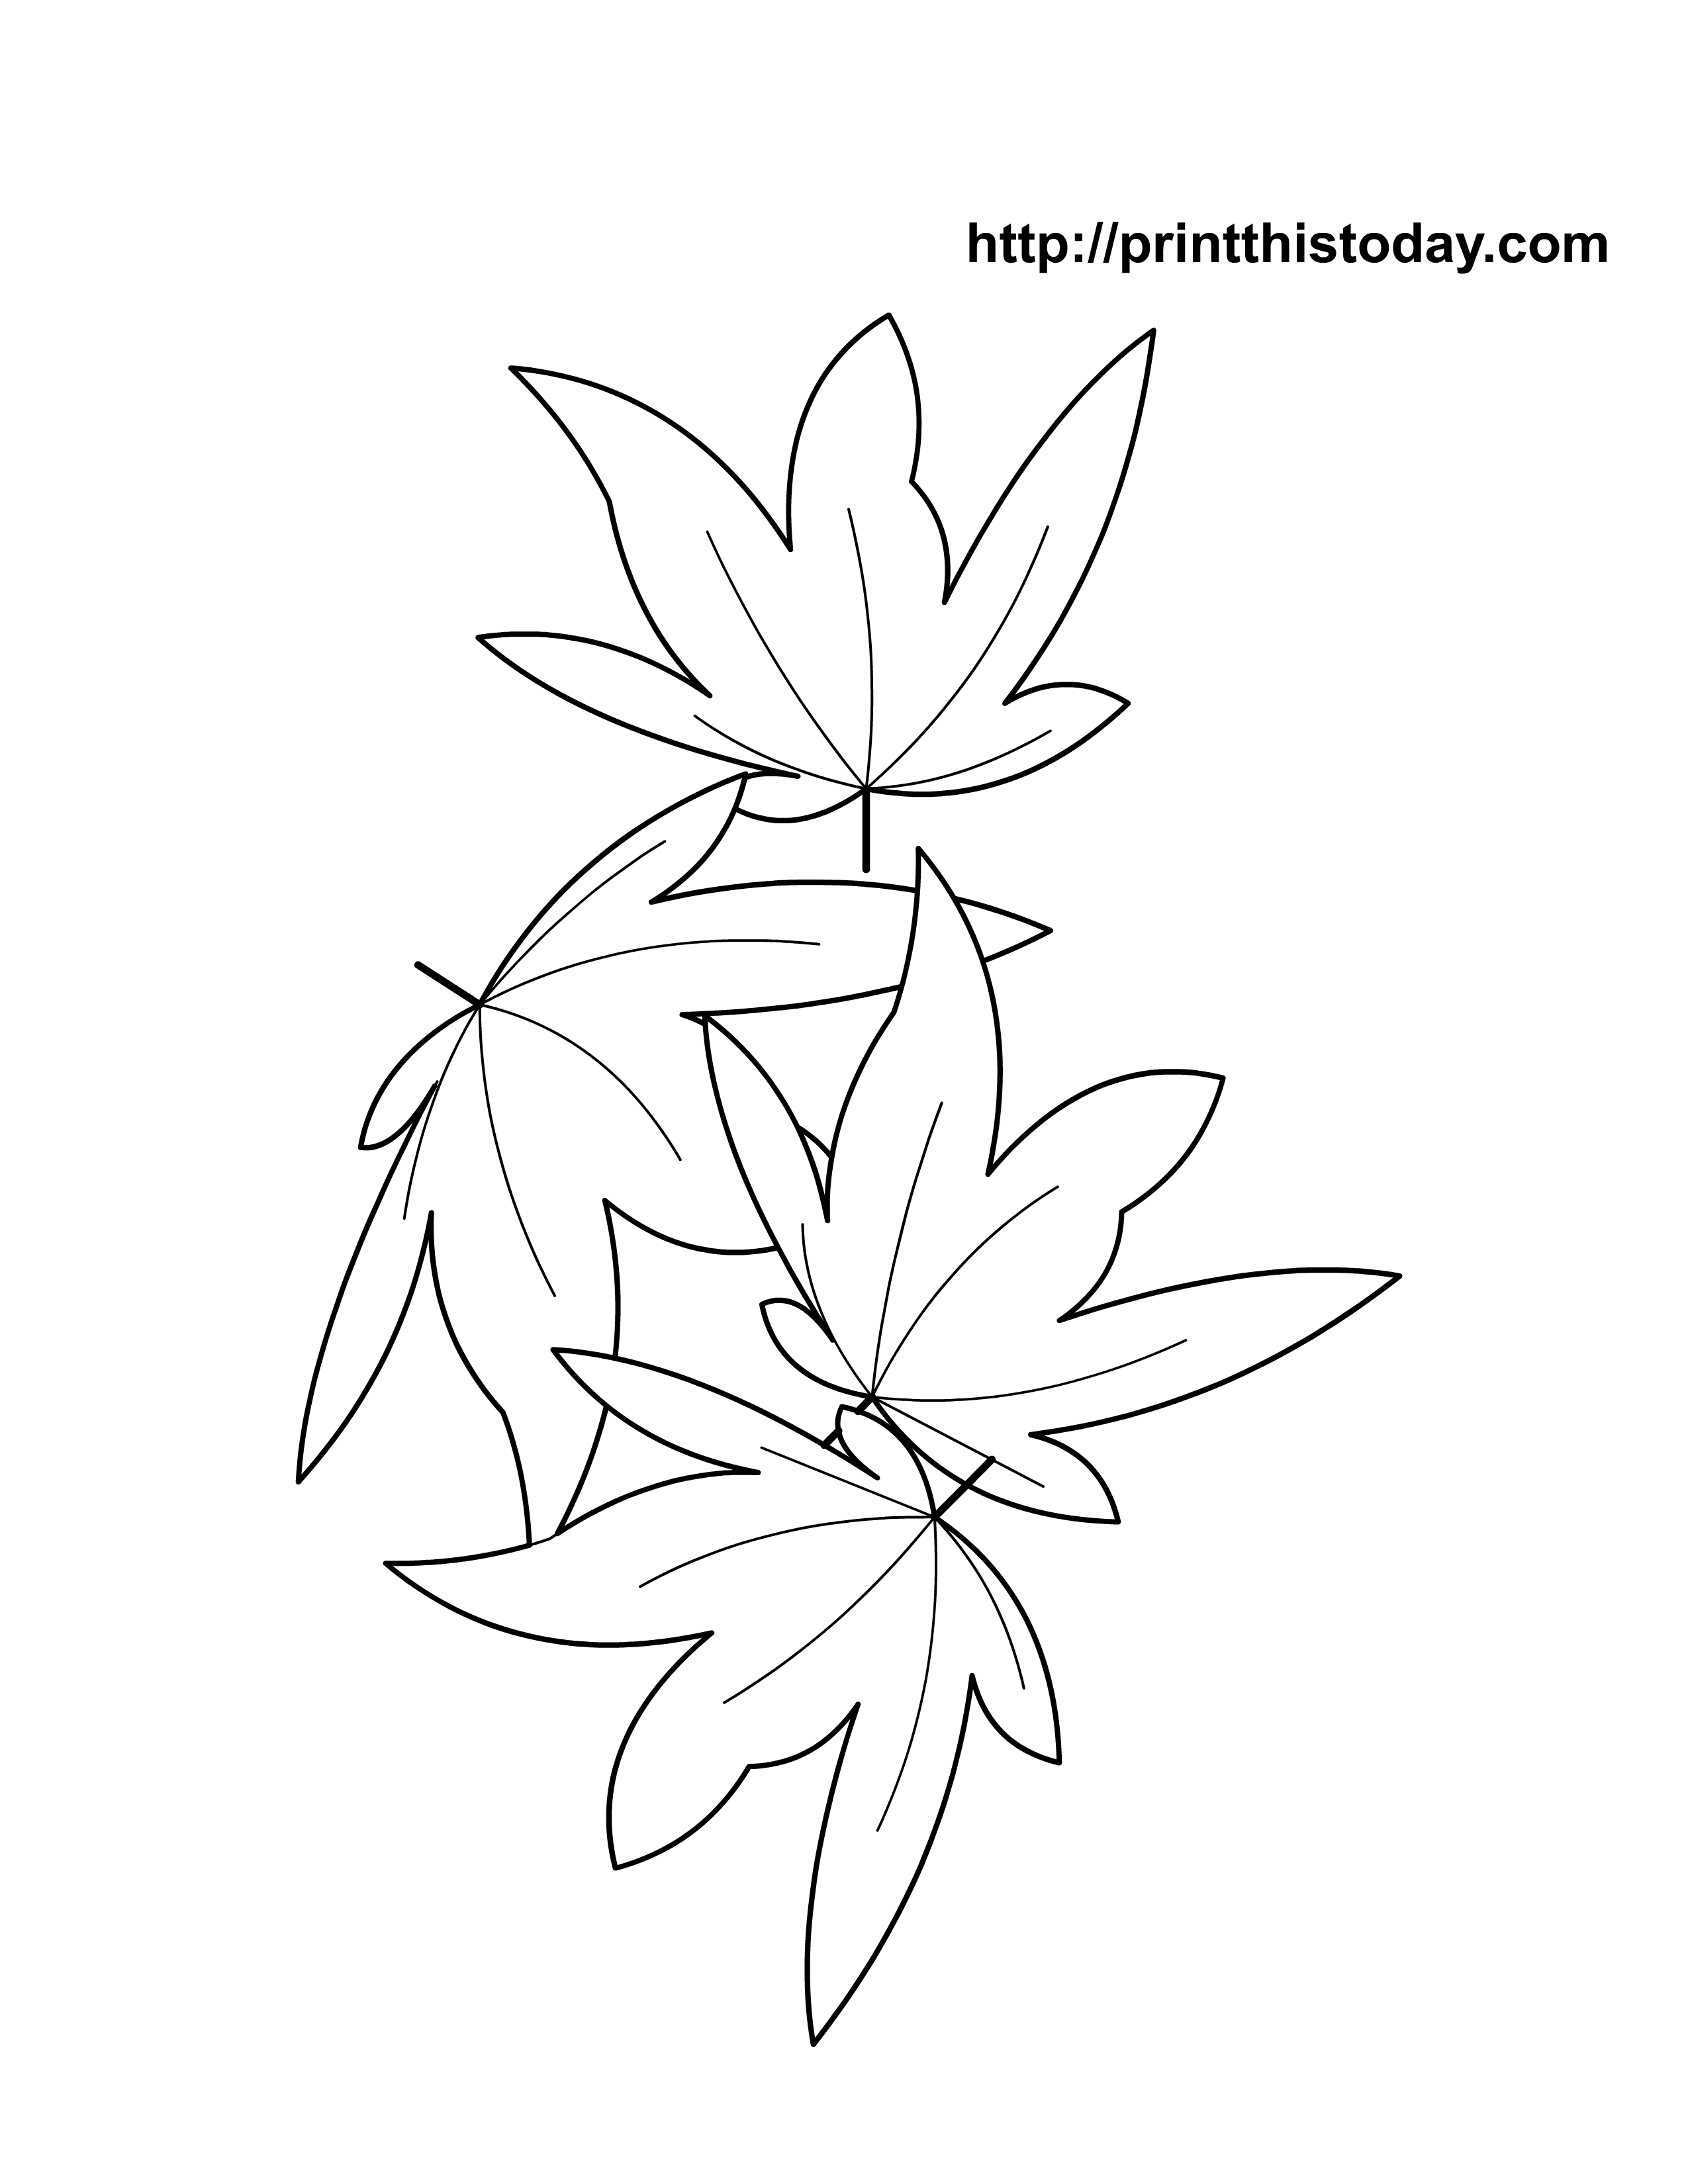 Free Printable Autumn, Fall Coloring Pages